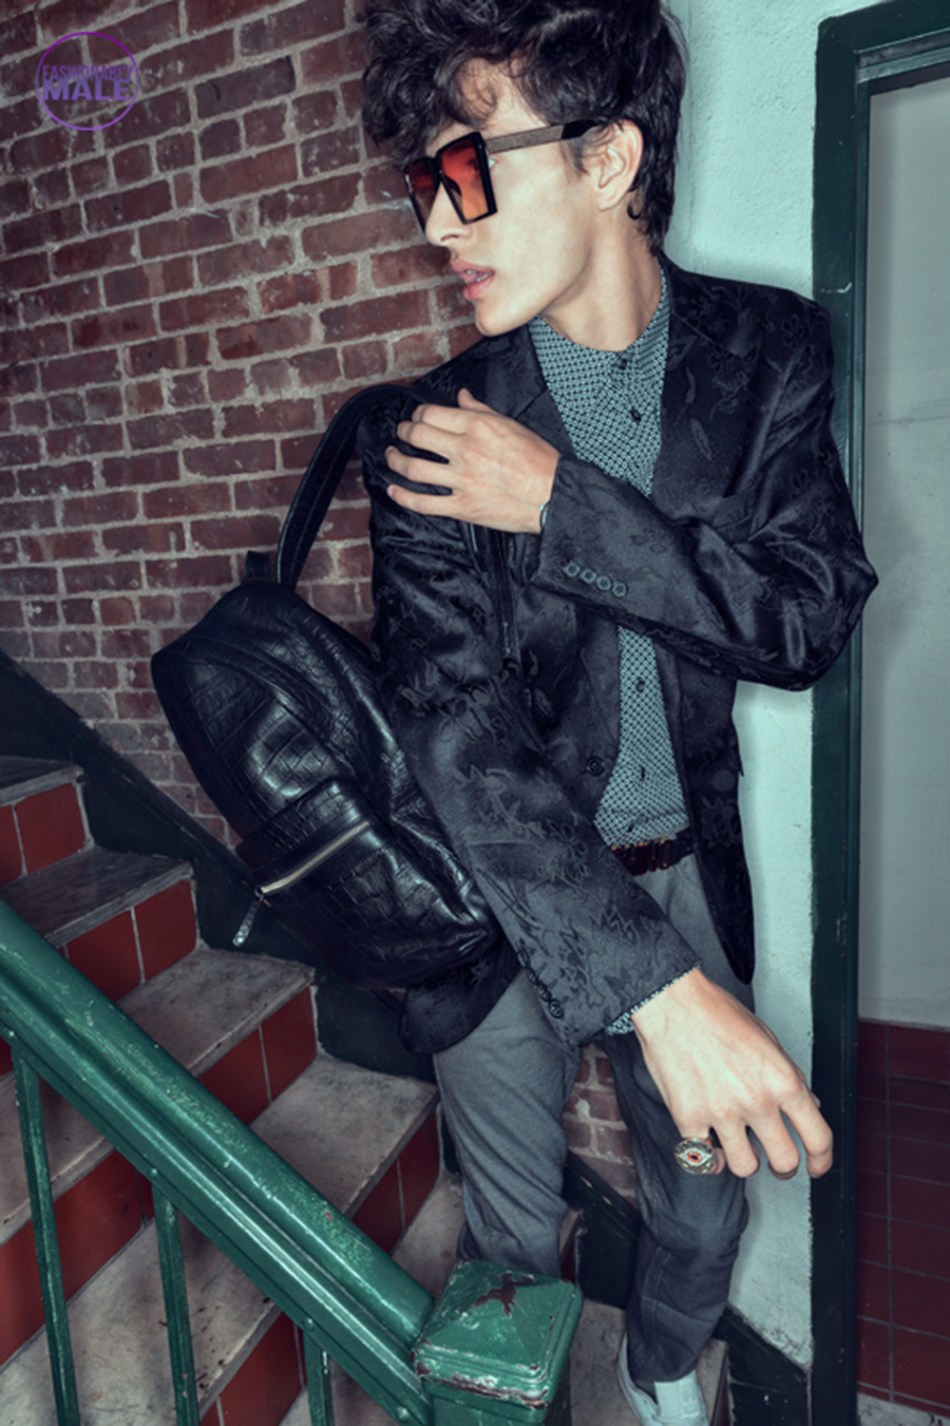 Mateo Birkner by Lagaret for Fashionably Male2